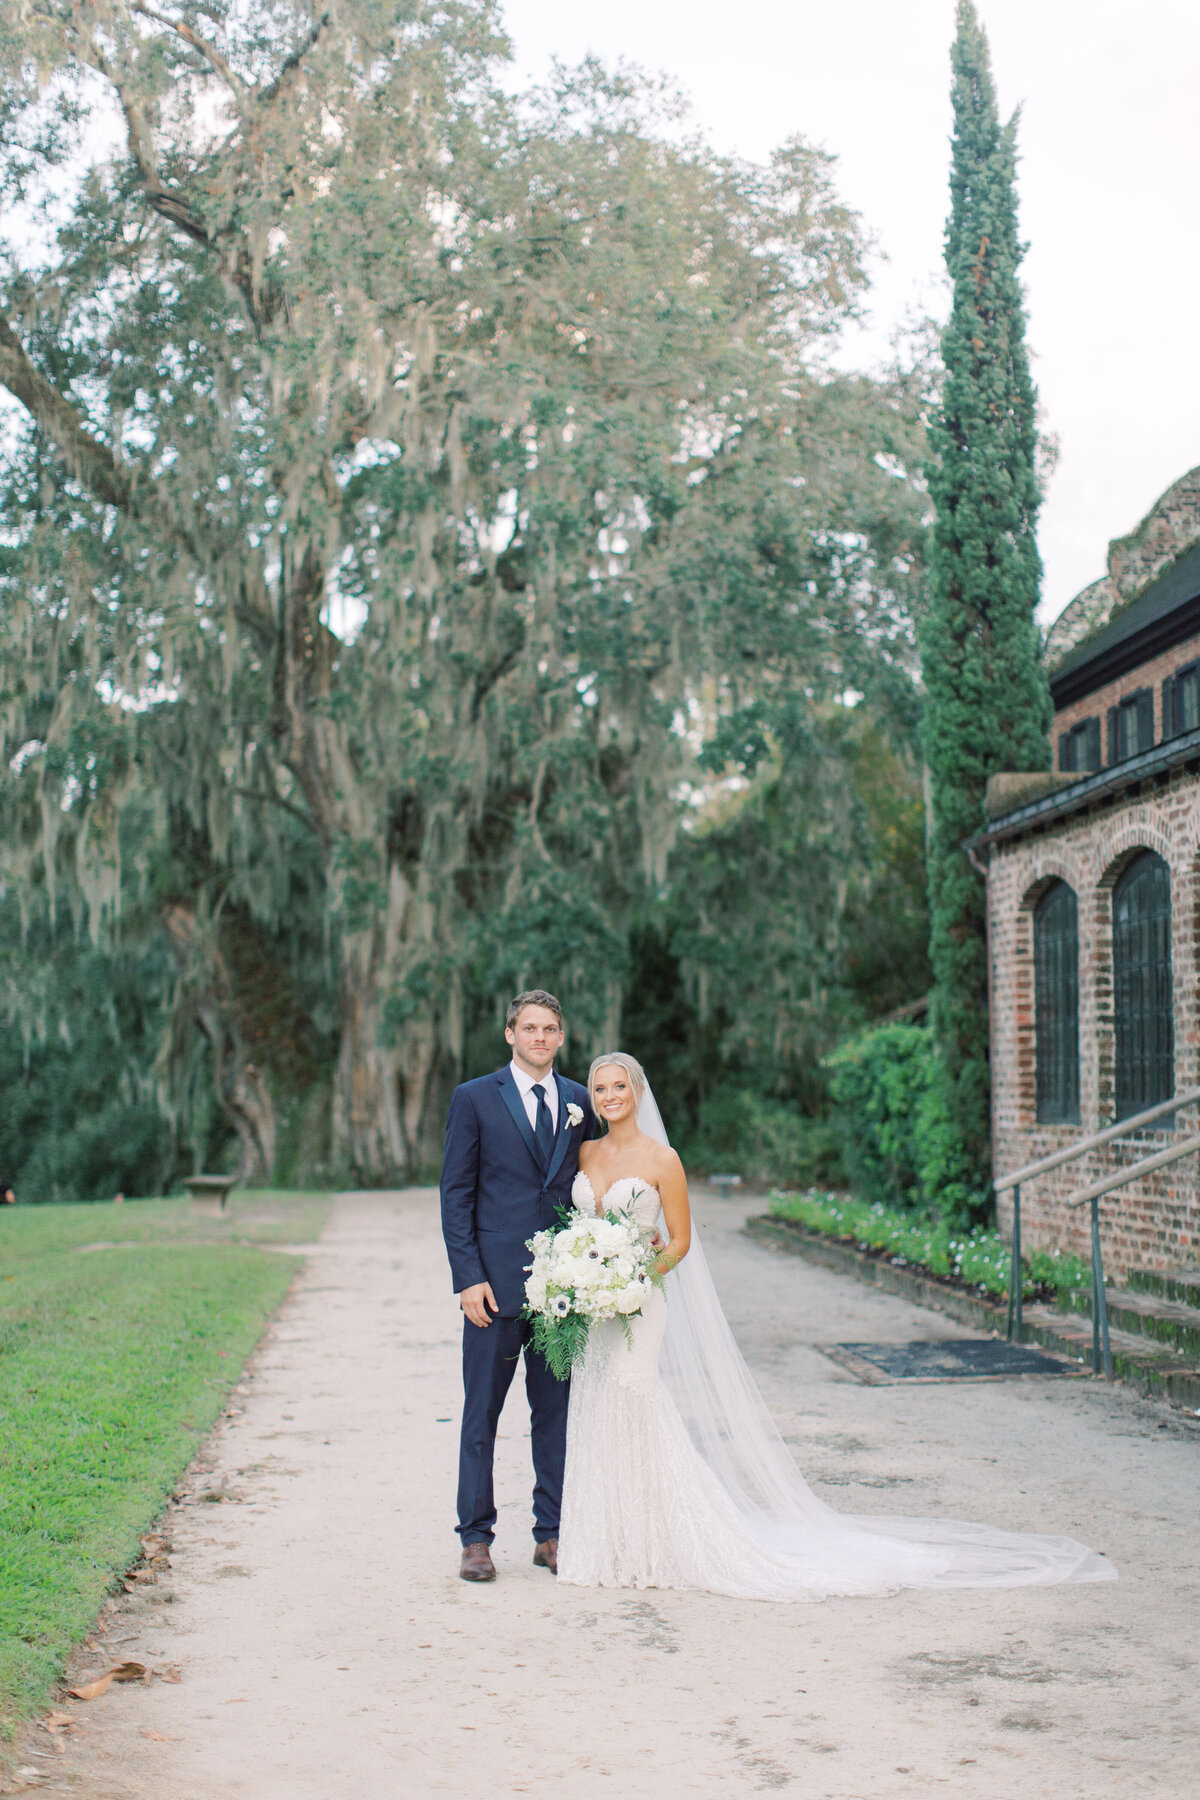 Melton_Wedding__Middleton_Place_Plantation_Charleston_South_Carolina_Jacksonville_Florida_Devon_Donnahoo_Photography__0794